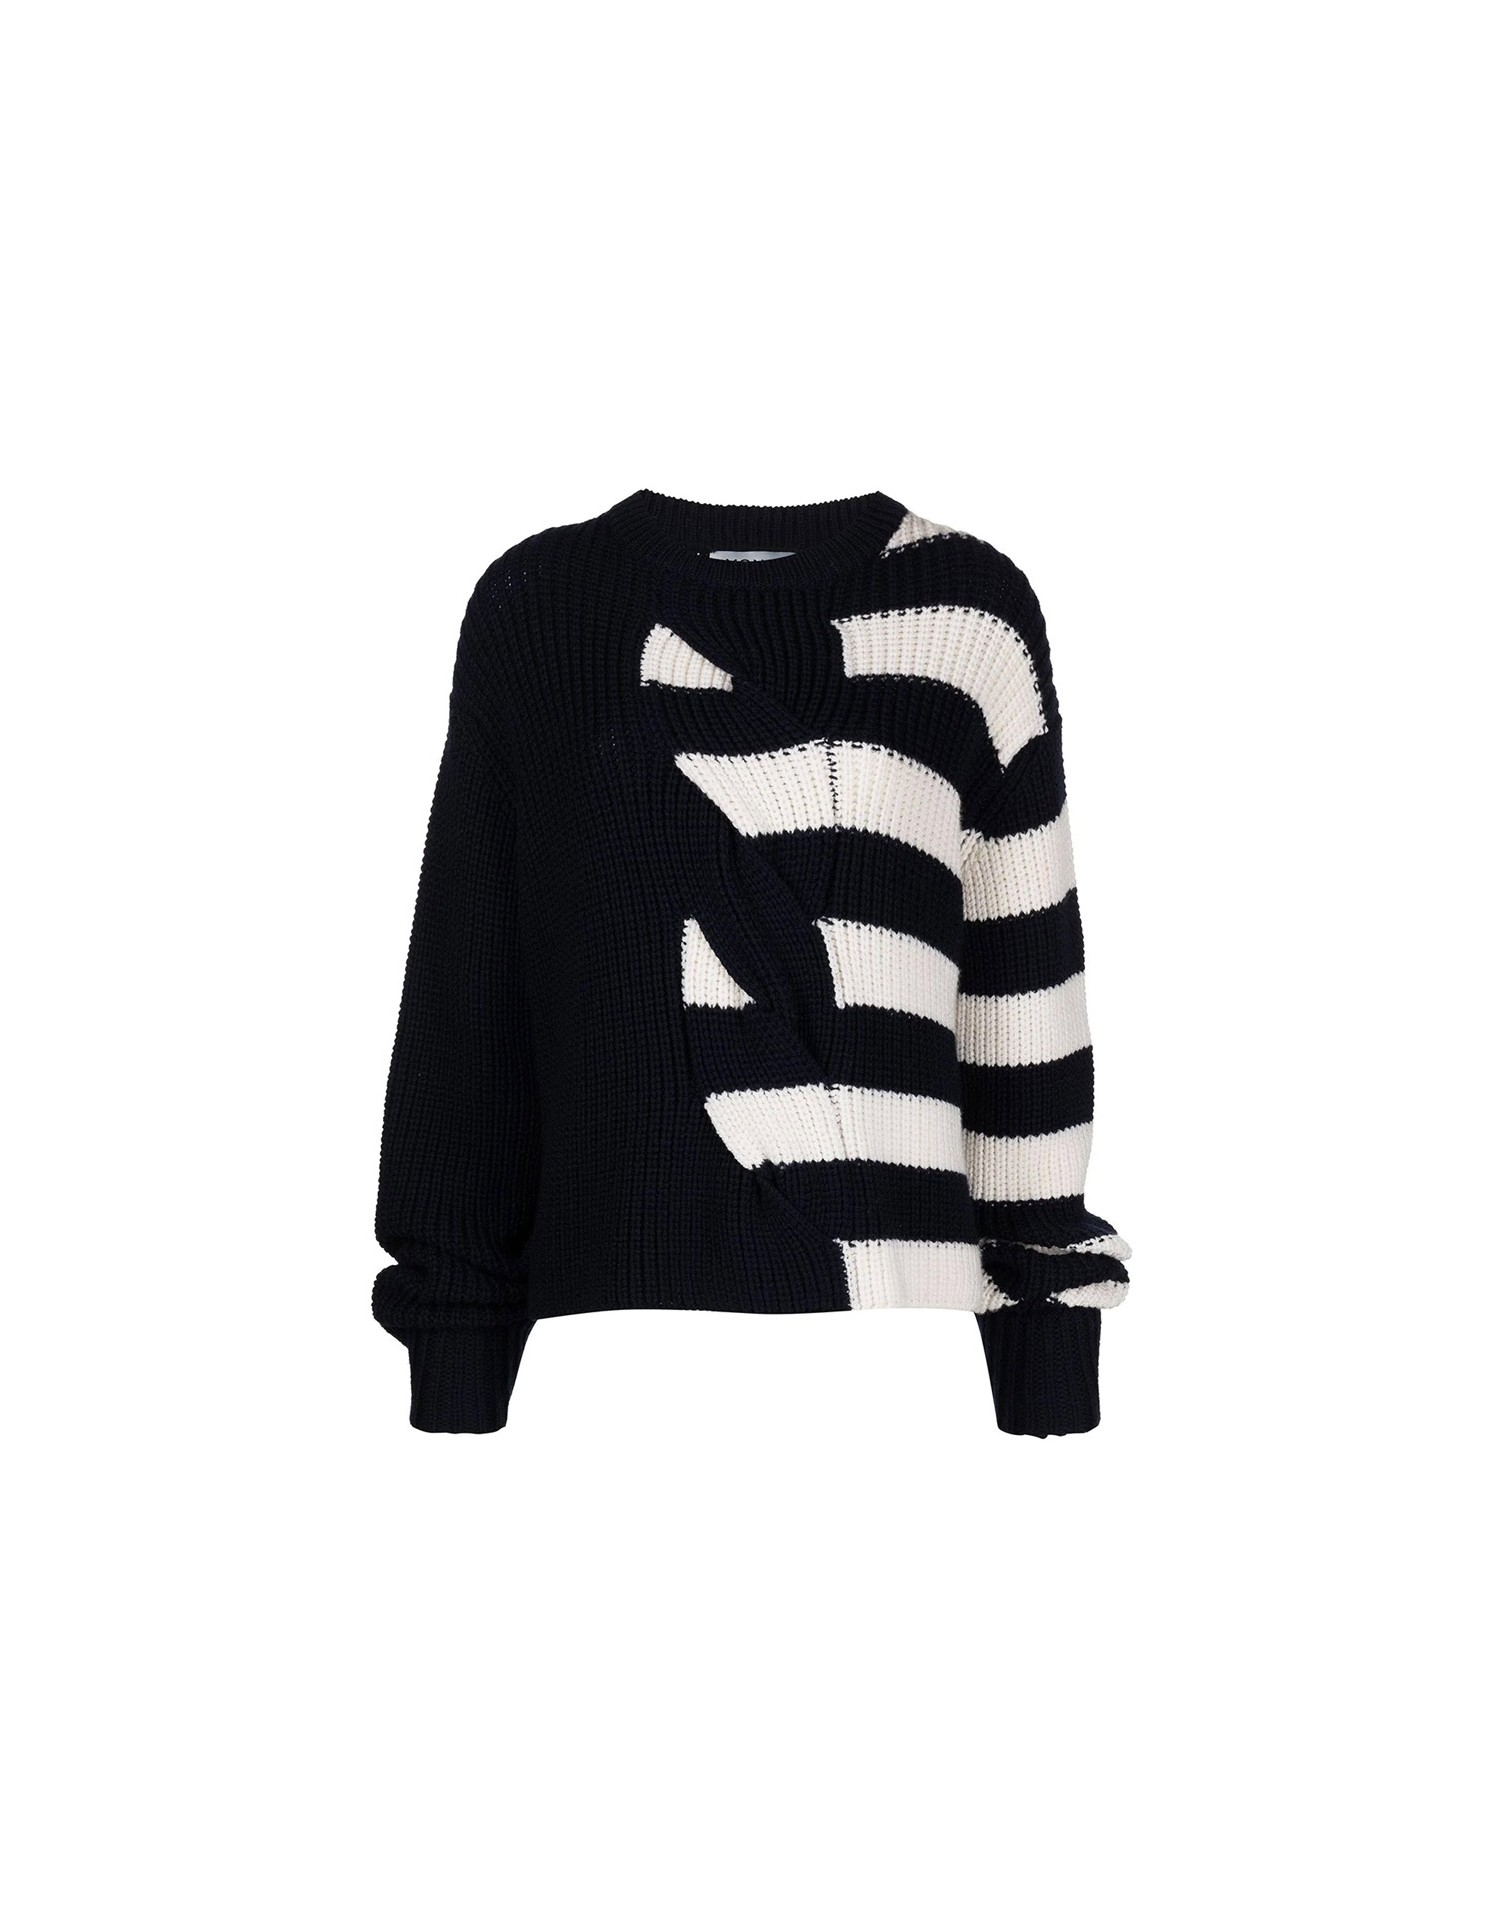 MONSE Half Stripe Cable Sweater in Midnight and Ivory on Model No Background Front